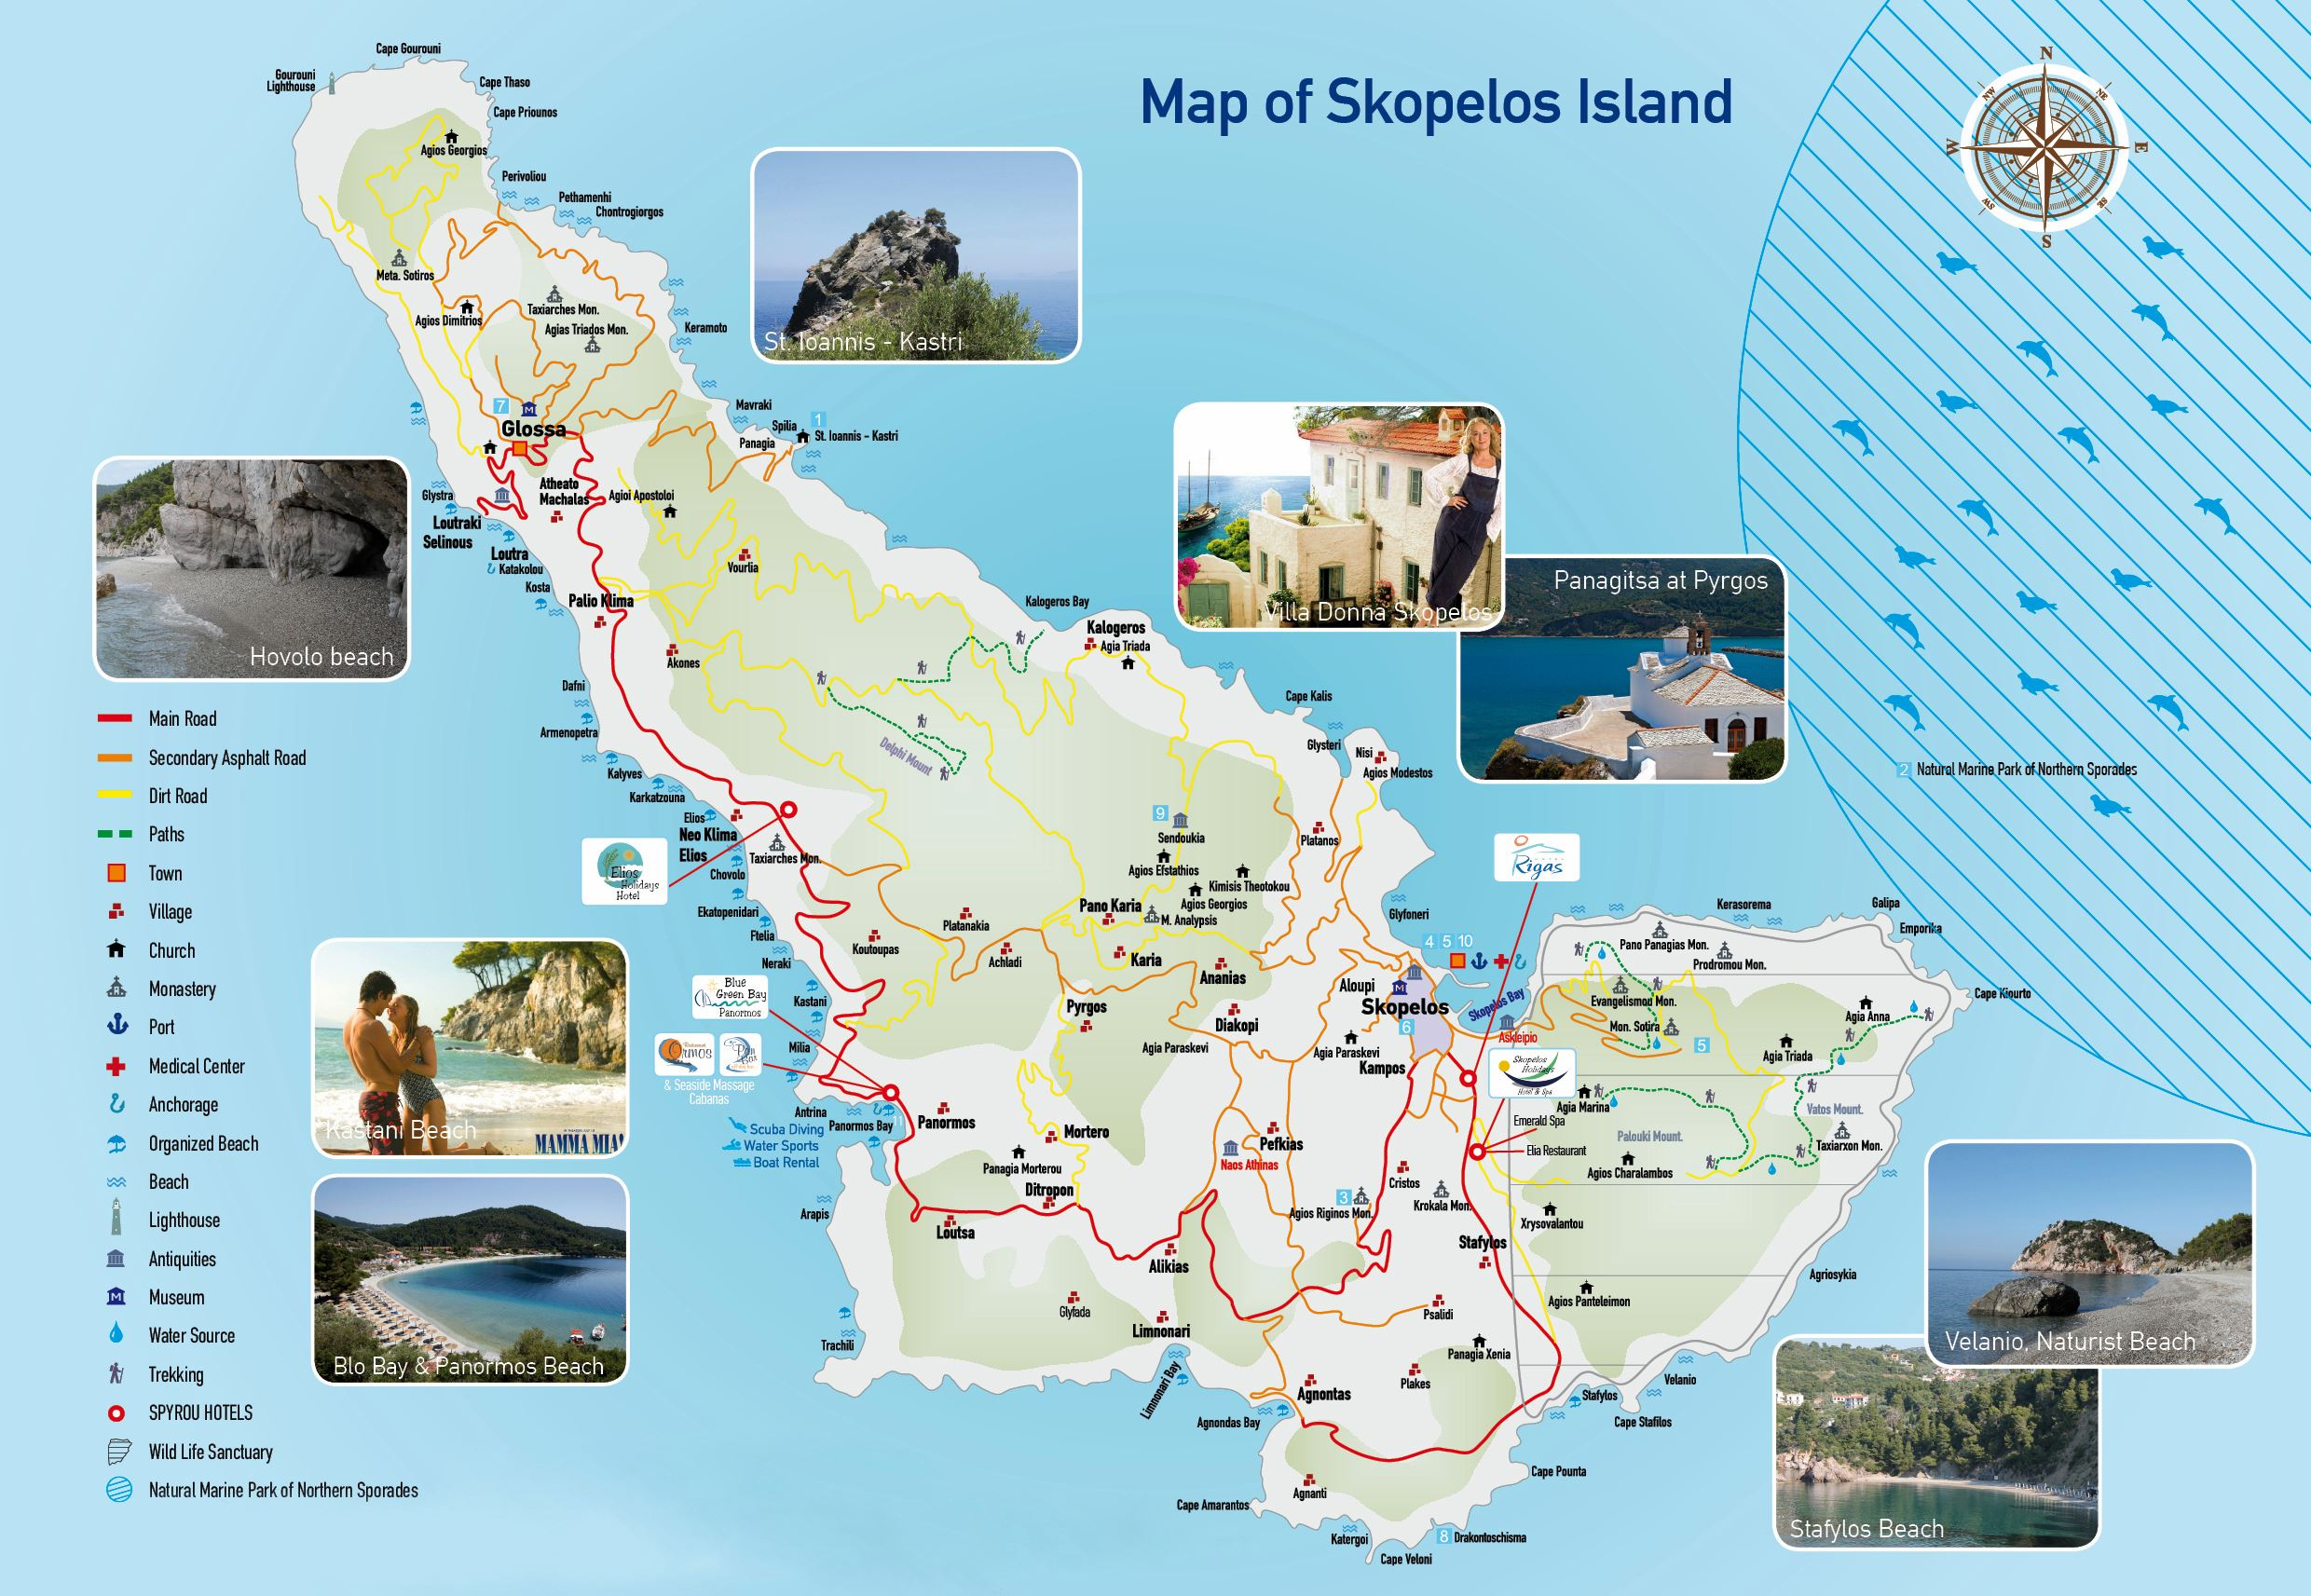 Large Skopelos Island Maps For Free Download And Print High